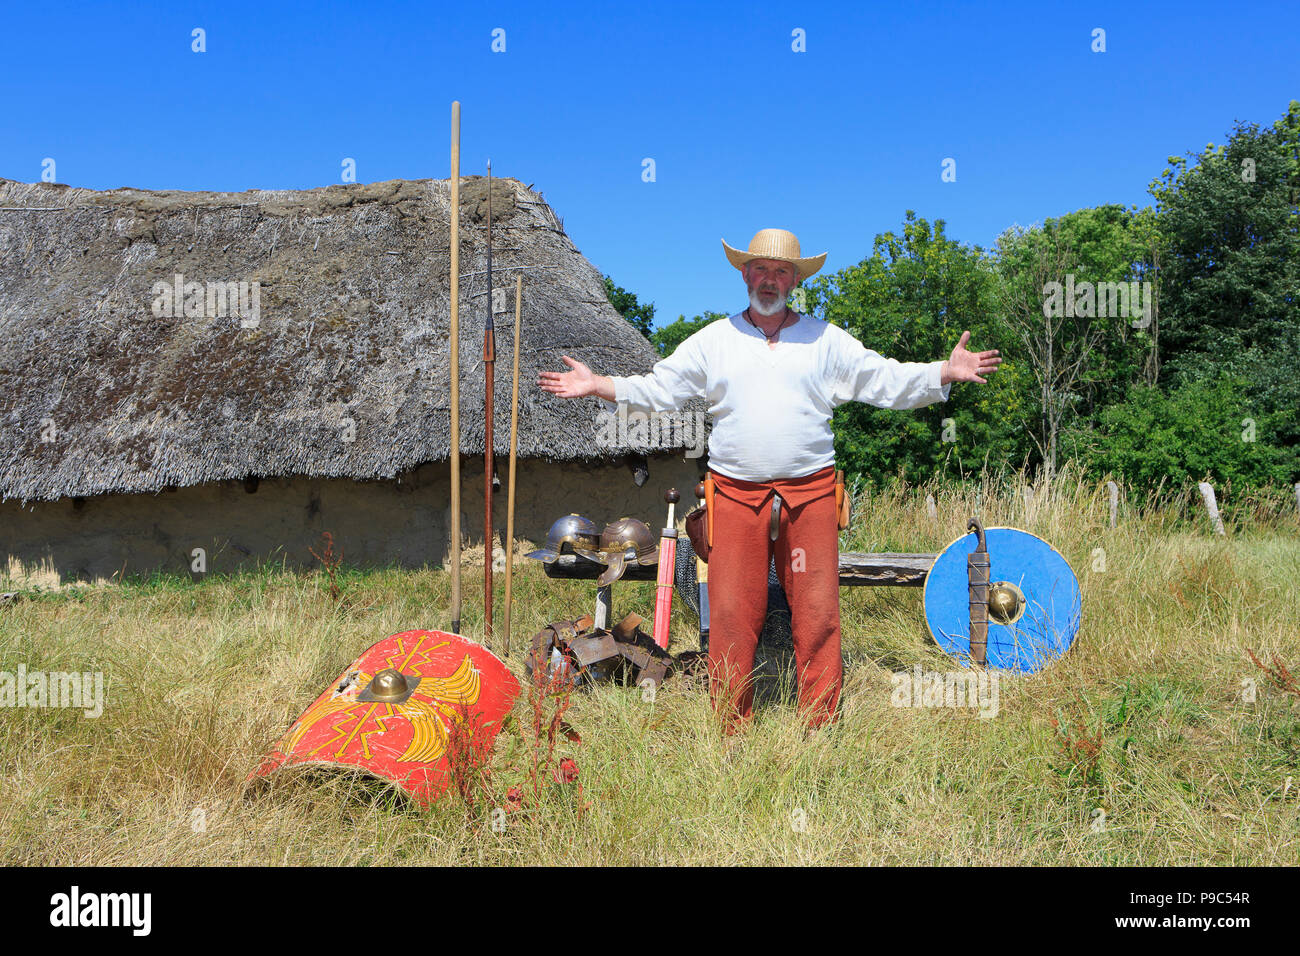 An archaeologist/historican showcasing and explaning about ancient weaponry at The Land of Legends in Lejre, Denmark - Stock Image